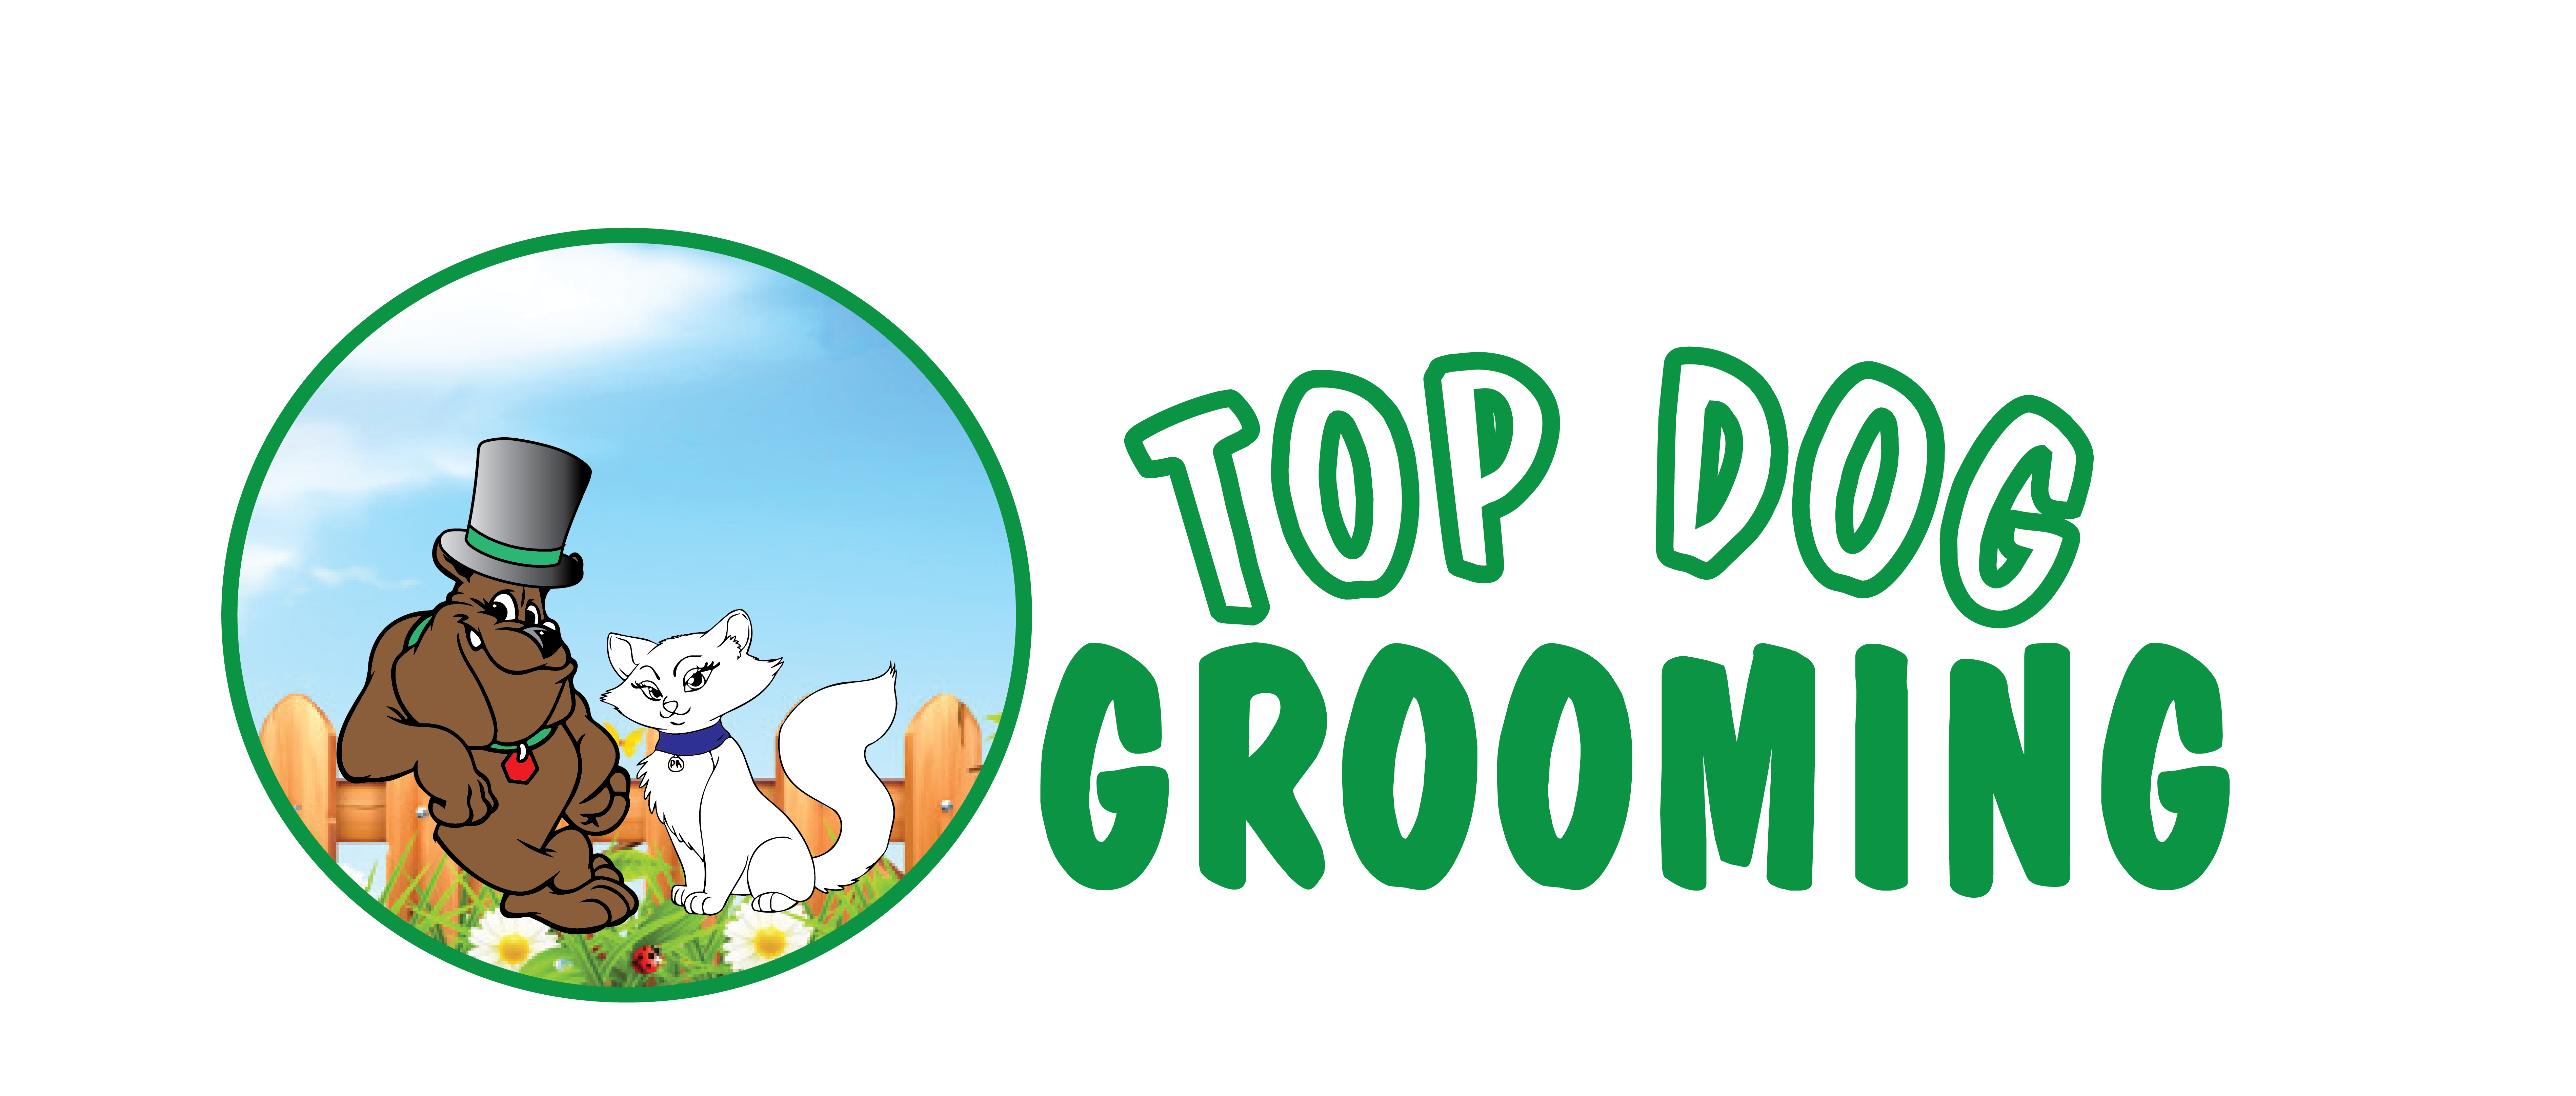 Cleaning top dog grooming. Ears clipart ear wax